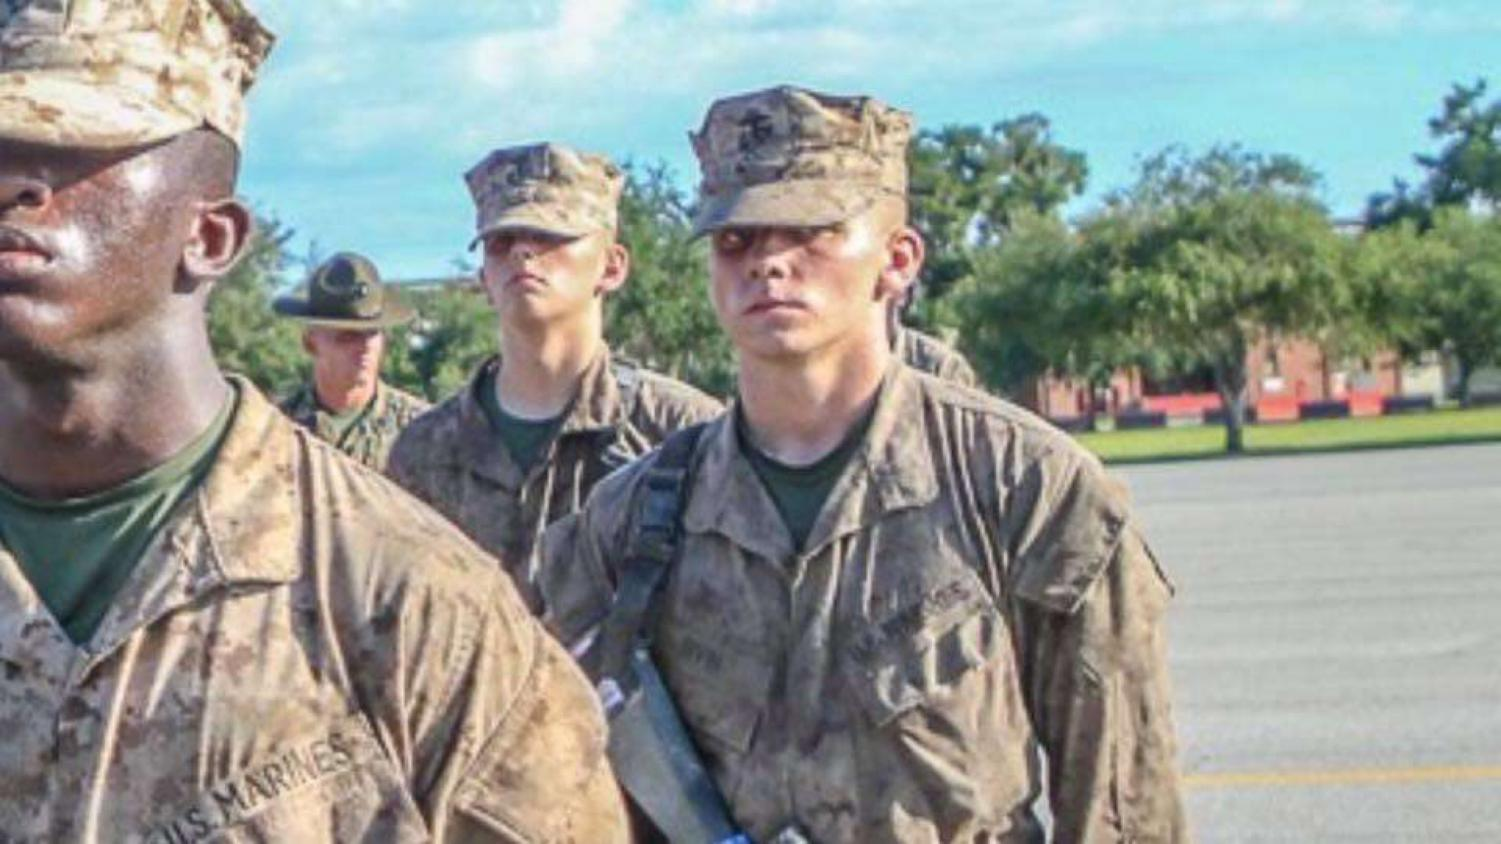 Noah Irvin is officially named a United States Marine after the Crucible.